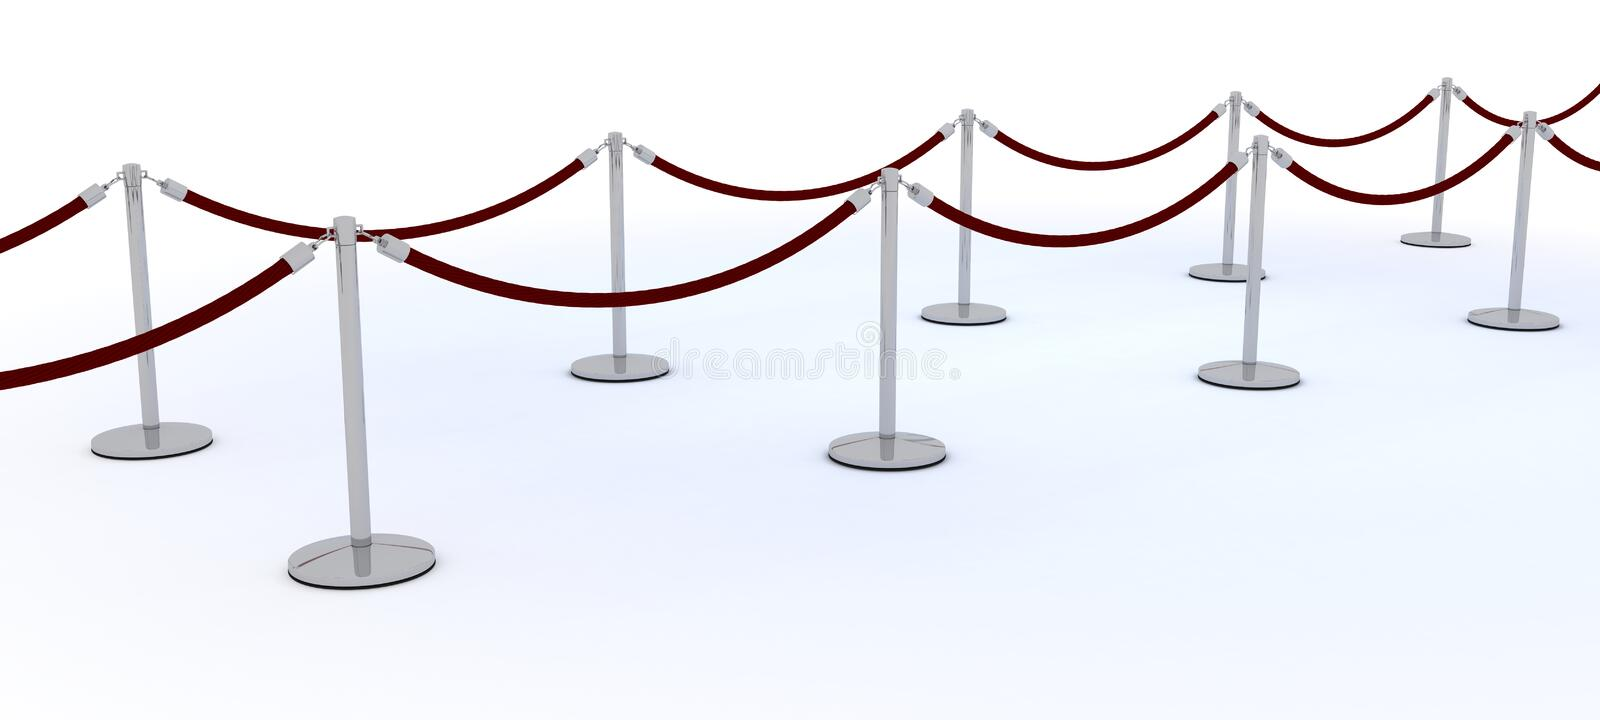 Download Red carpet and velvet rope stock illustration. Image of render - 25896087